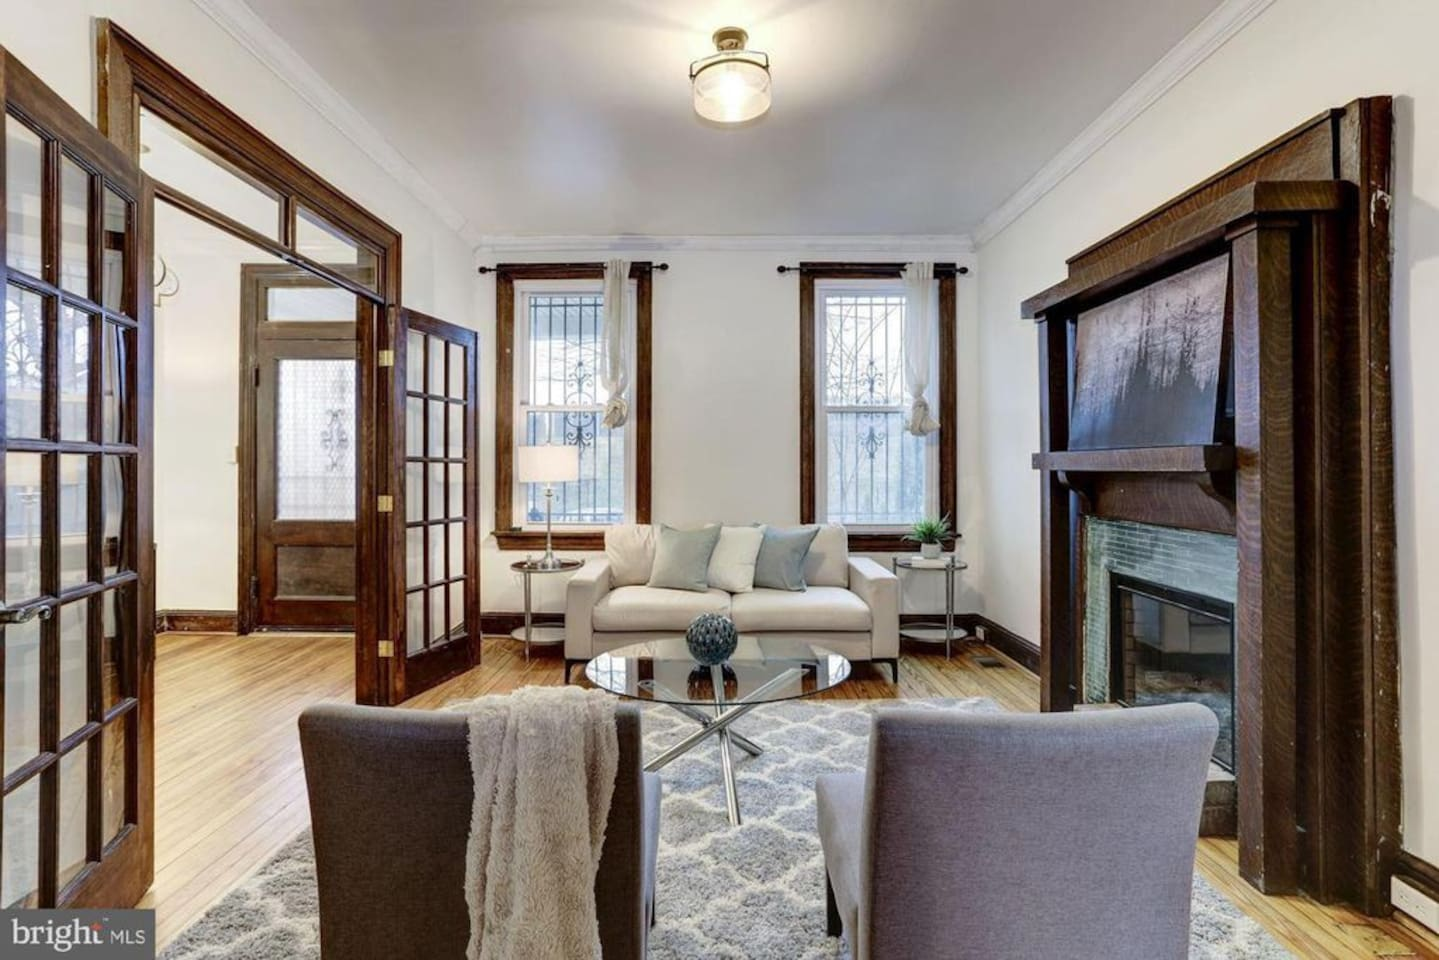 Front foyer which leads to dining room - Original woodwork throughout including pocket doors. Great light through windows